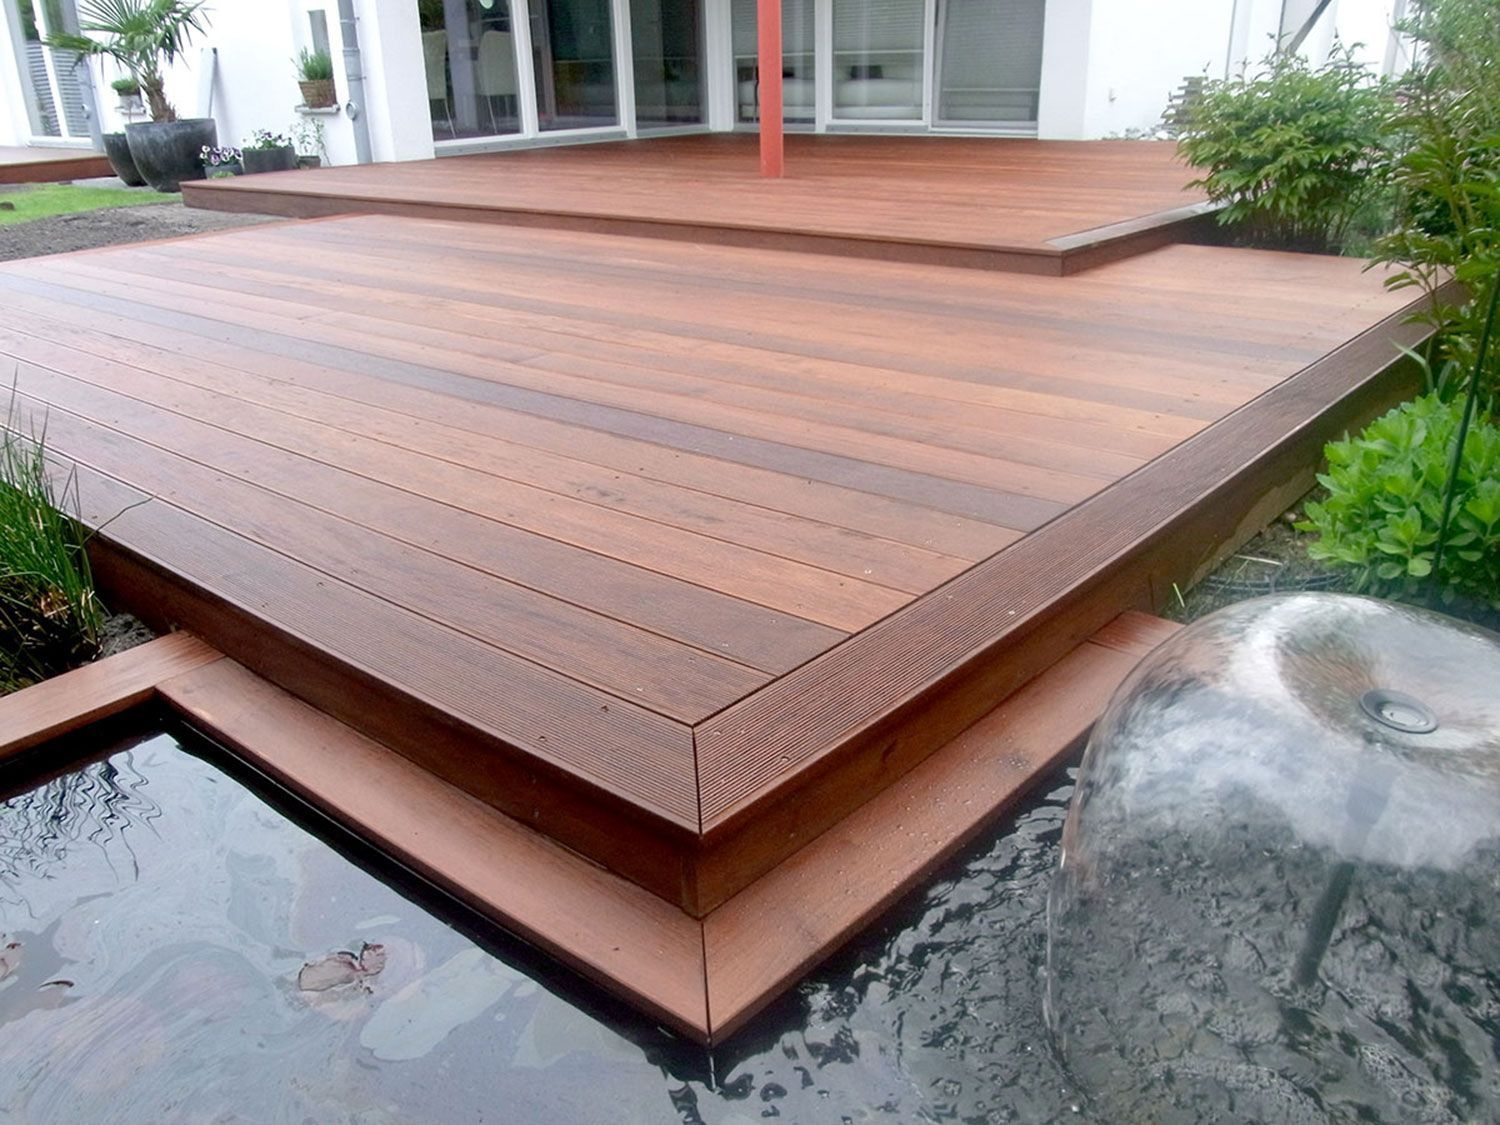 Bluemetal S Low Deck Over Concrete Finished But Not Finished Deckbuilding Salvabrani Small Backyard Decks Deck Over Concrete Decks Backyard